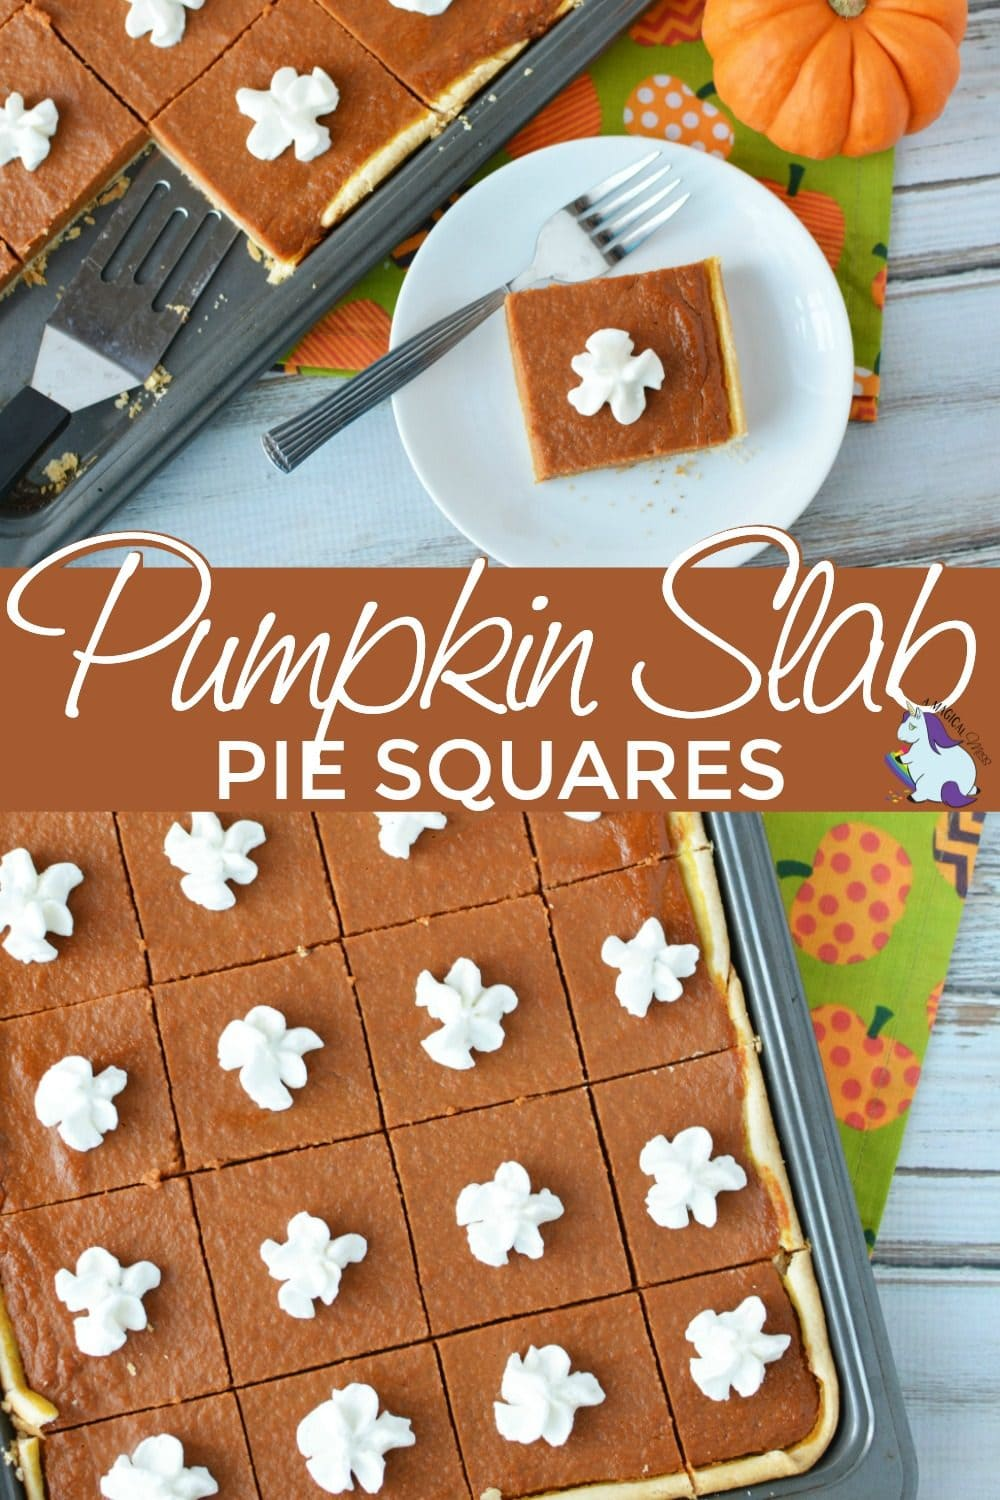 Pumpkin pie square on a plate and the whole tray of pumpkin slices.